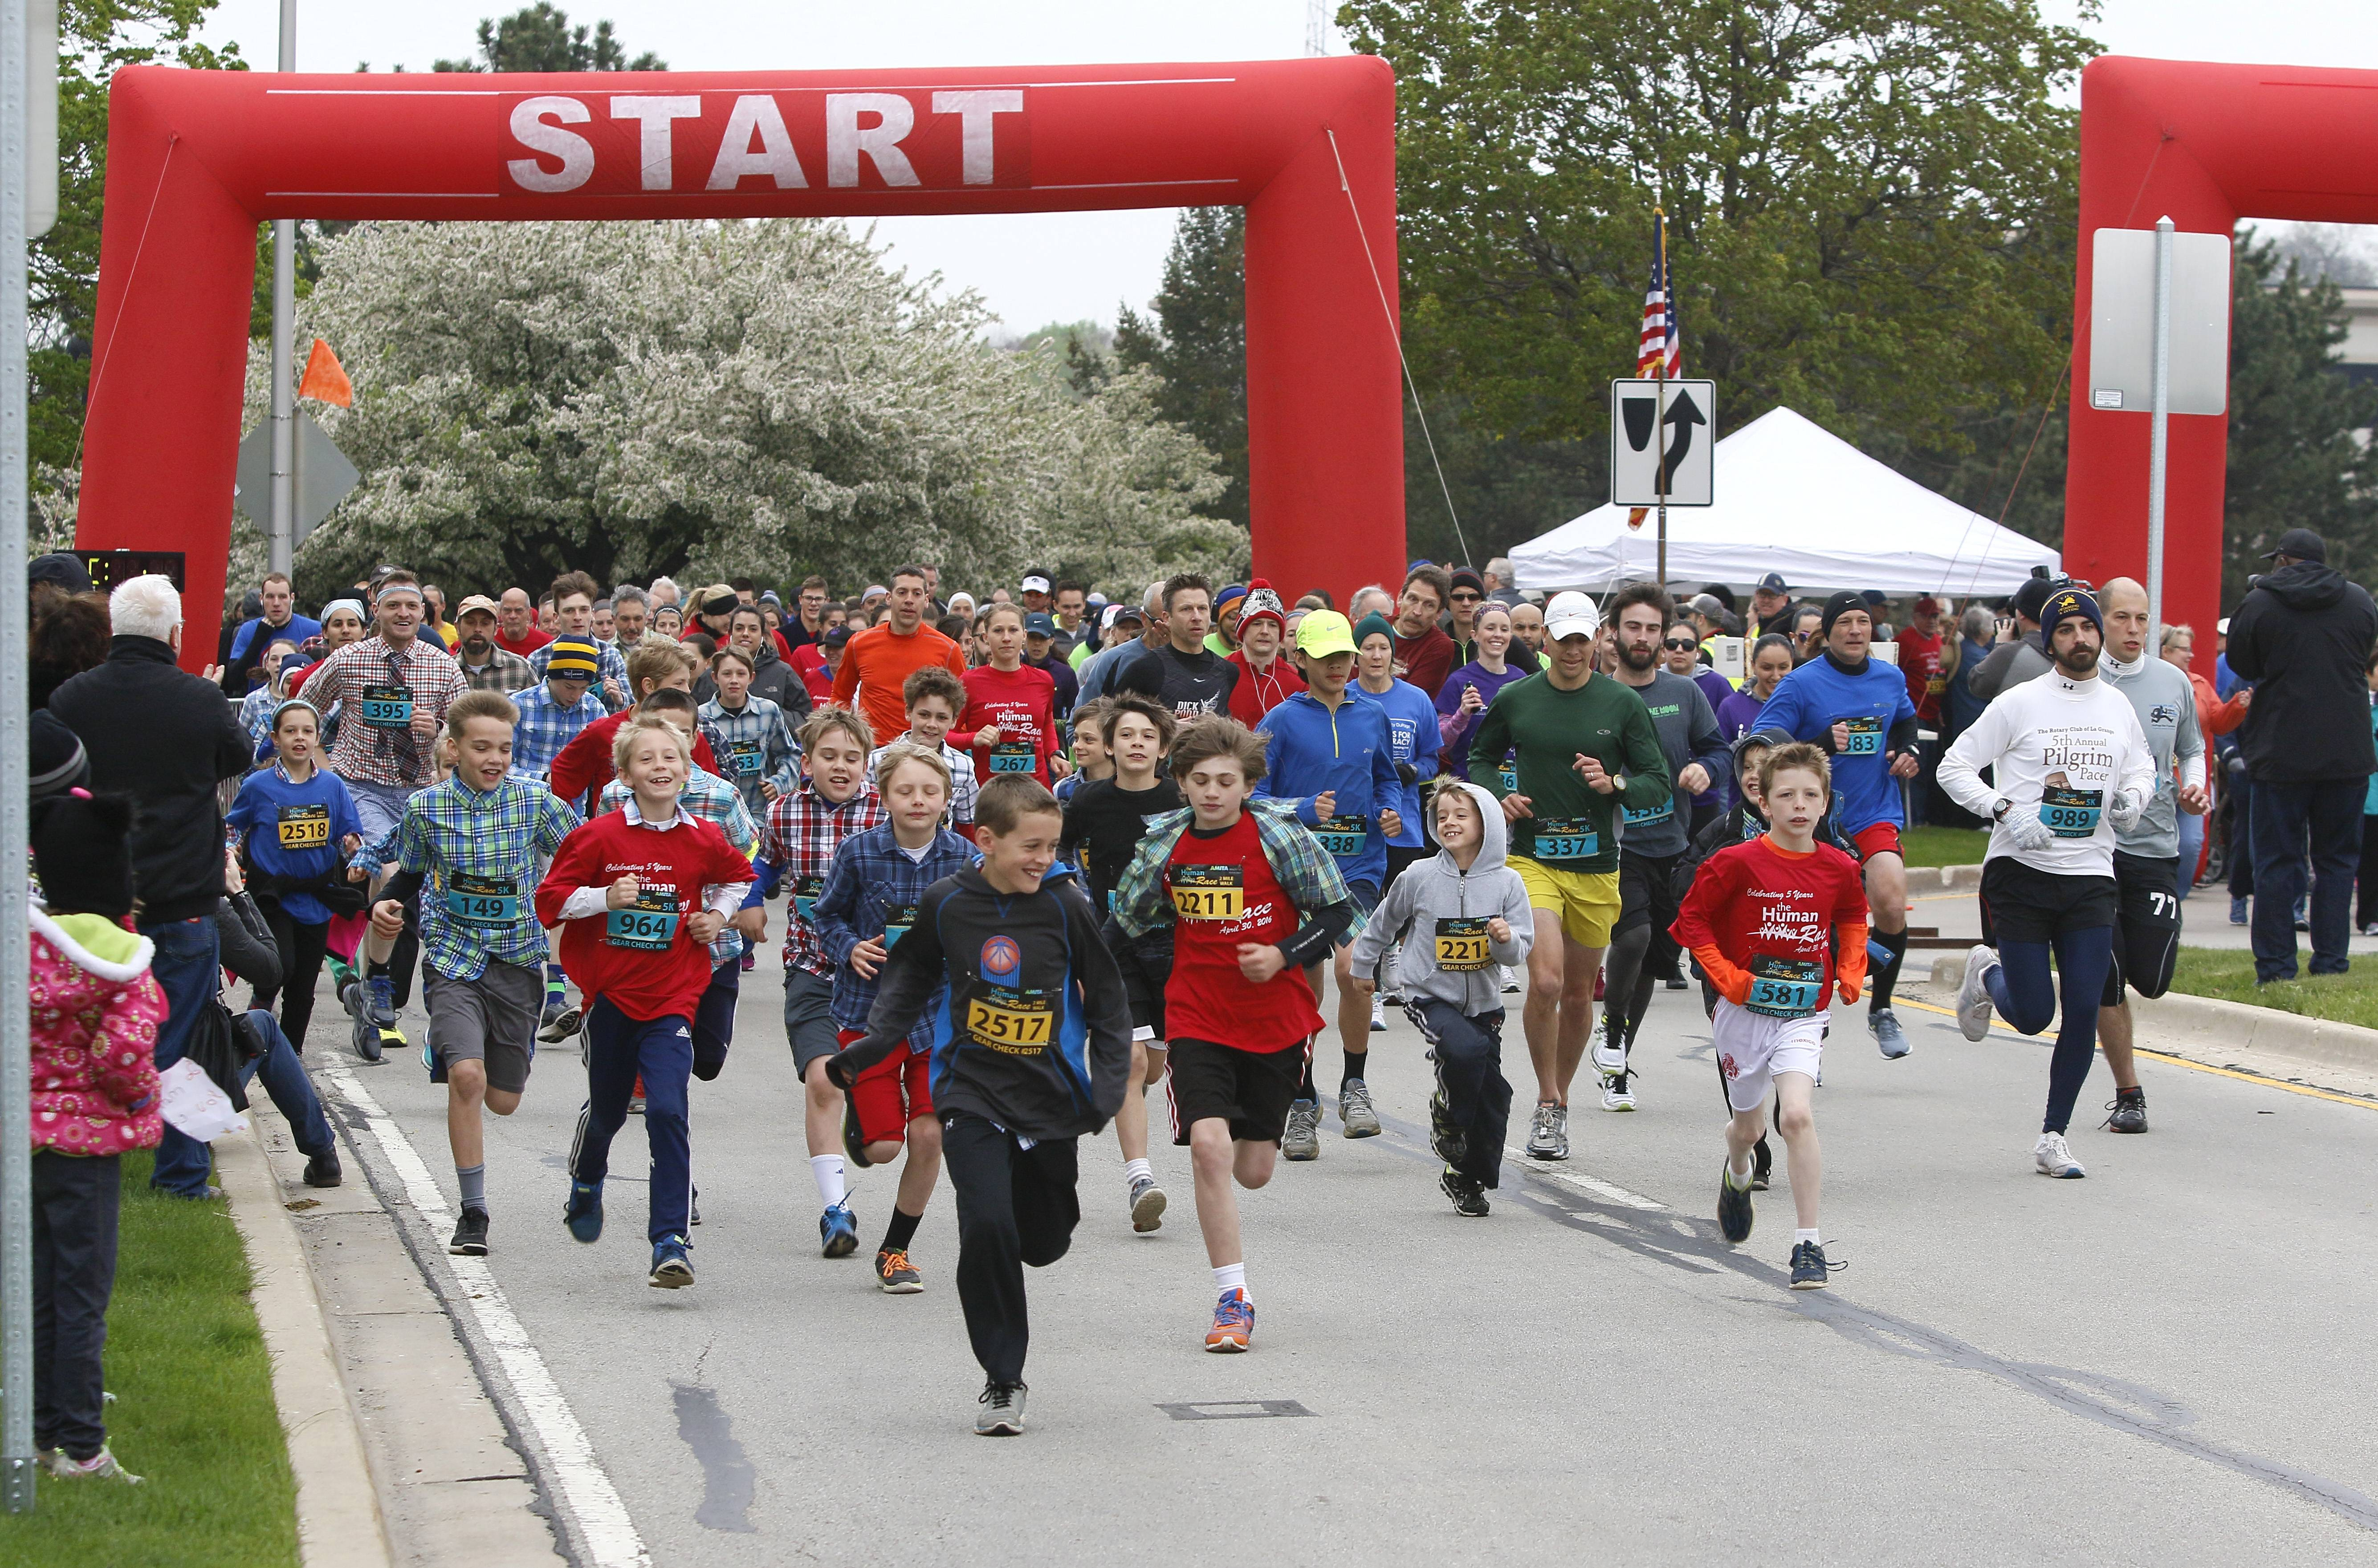 Kids sprint from the starting line at last year's DuPage Human Race in Downers Grove. The 5k race and 2-mile walk raises money for 72 local charities, and draws participants from toddlers to people in their 70s.